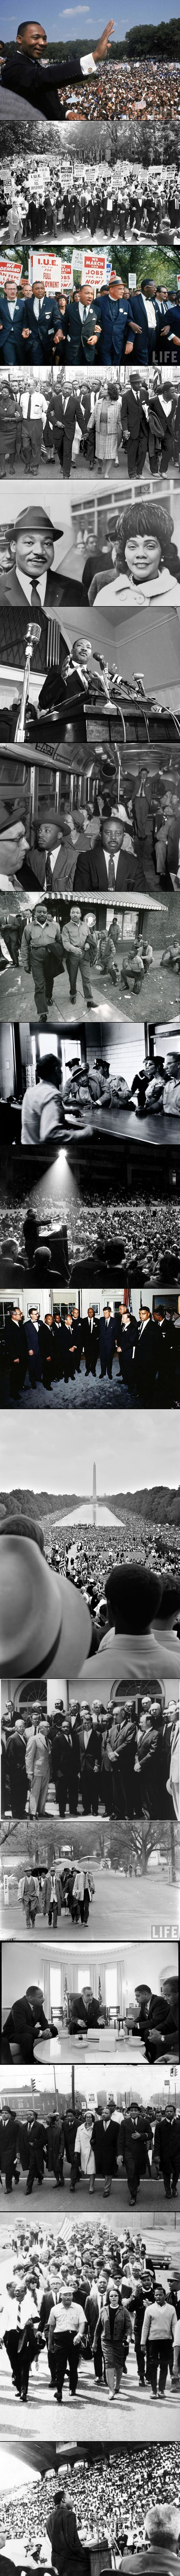 Dr. Martin Luther King Jr accomplished more in 39 years of life than any man could wish to accomplish in 100 lifetimes. He was born January 15, 1929 into a life of Southern segration but would eventually be thrust into a unique position where he would become a national icon in the history of American progressivism.